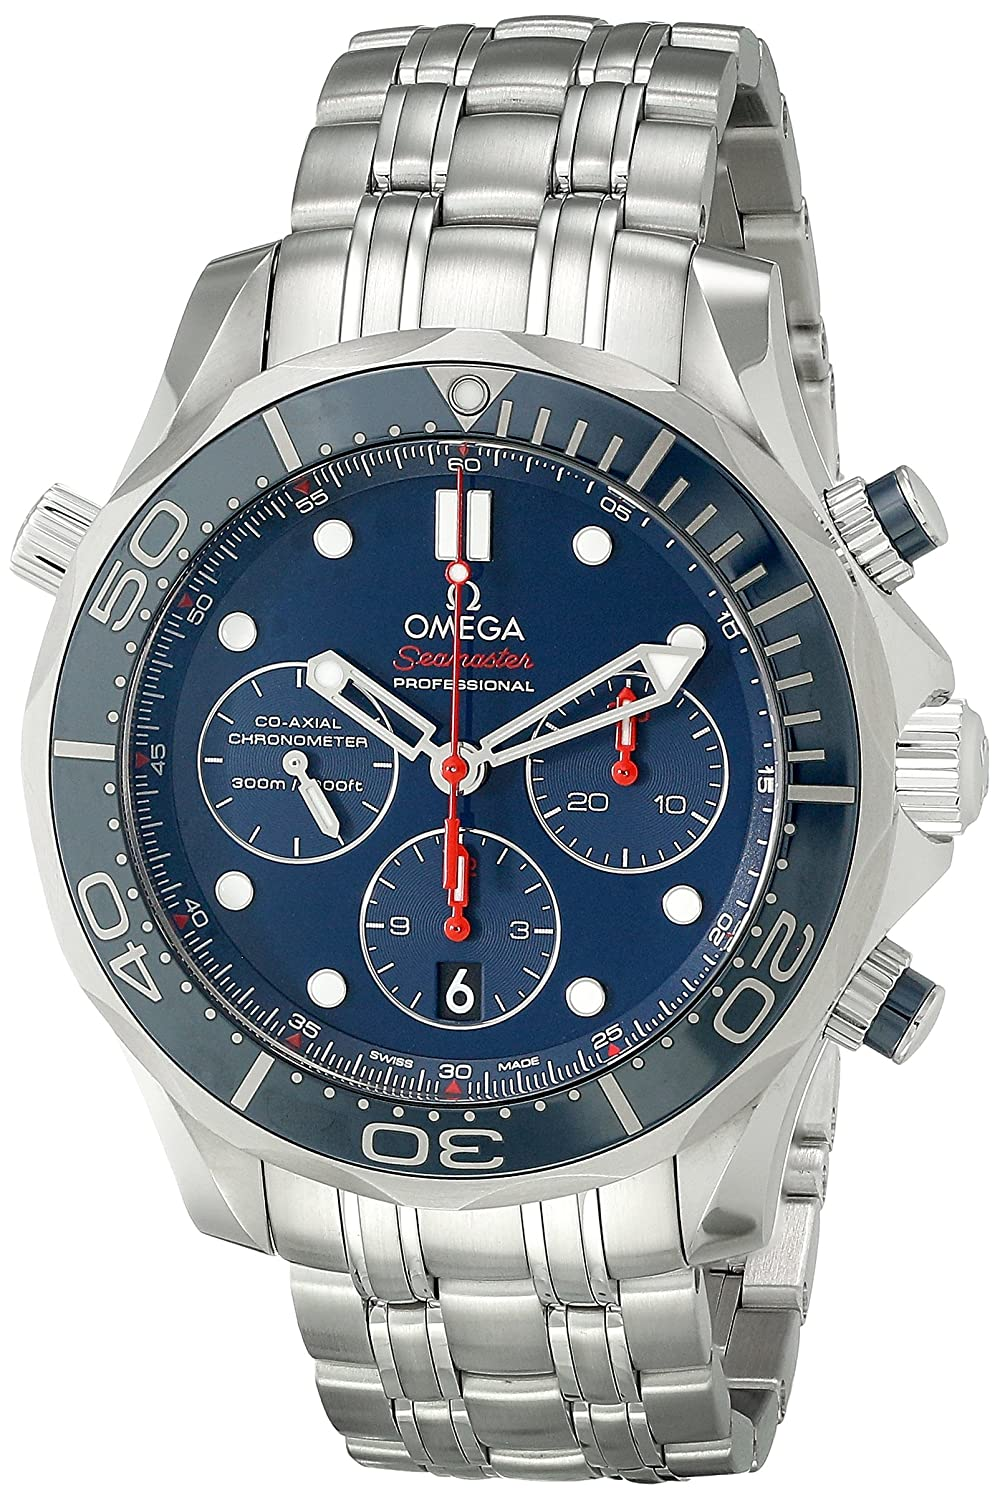 4230bc53b82e Amazon.com  Omega Men s 21230445003001 Diver 300 M Co-Axial Chronograph  Sliver Watch  Omega  Watches